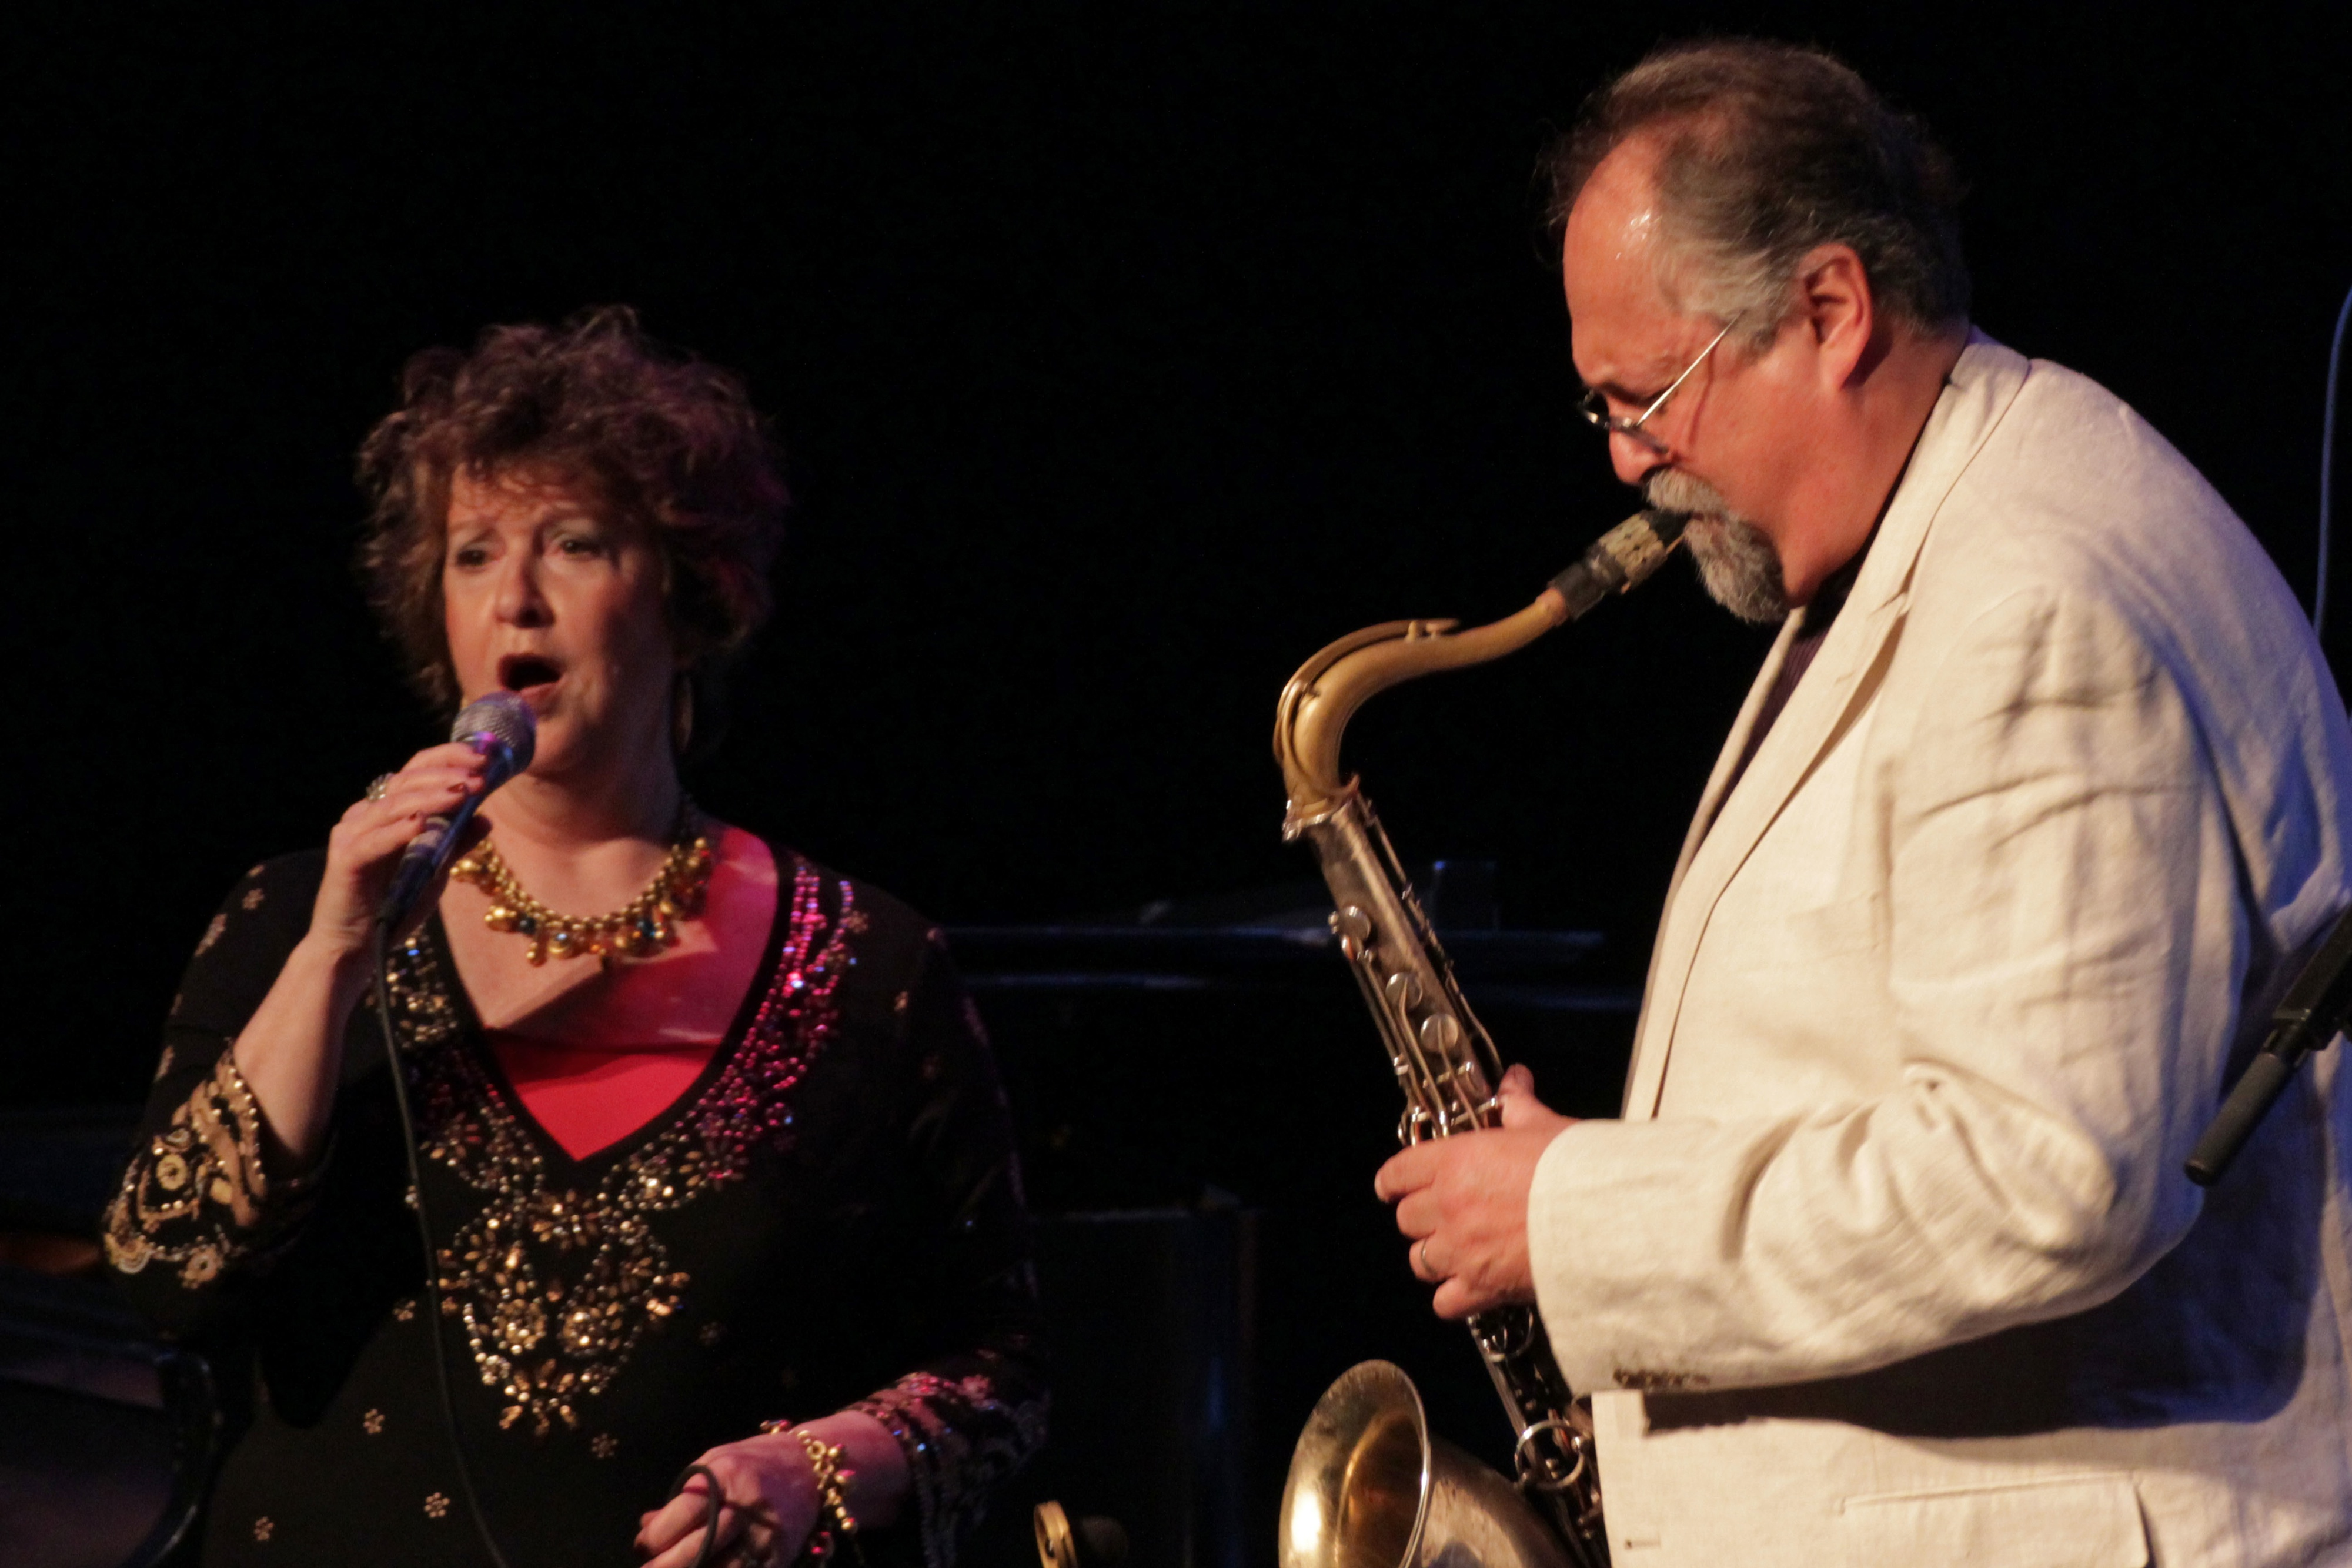 Judi silvano and joe lovano at tri-c jazzfest cleveland 2013